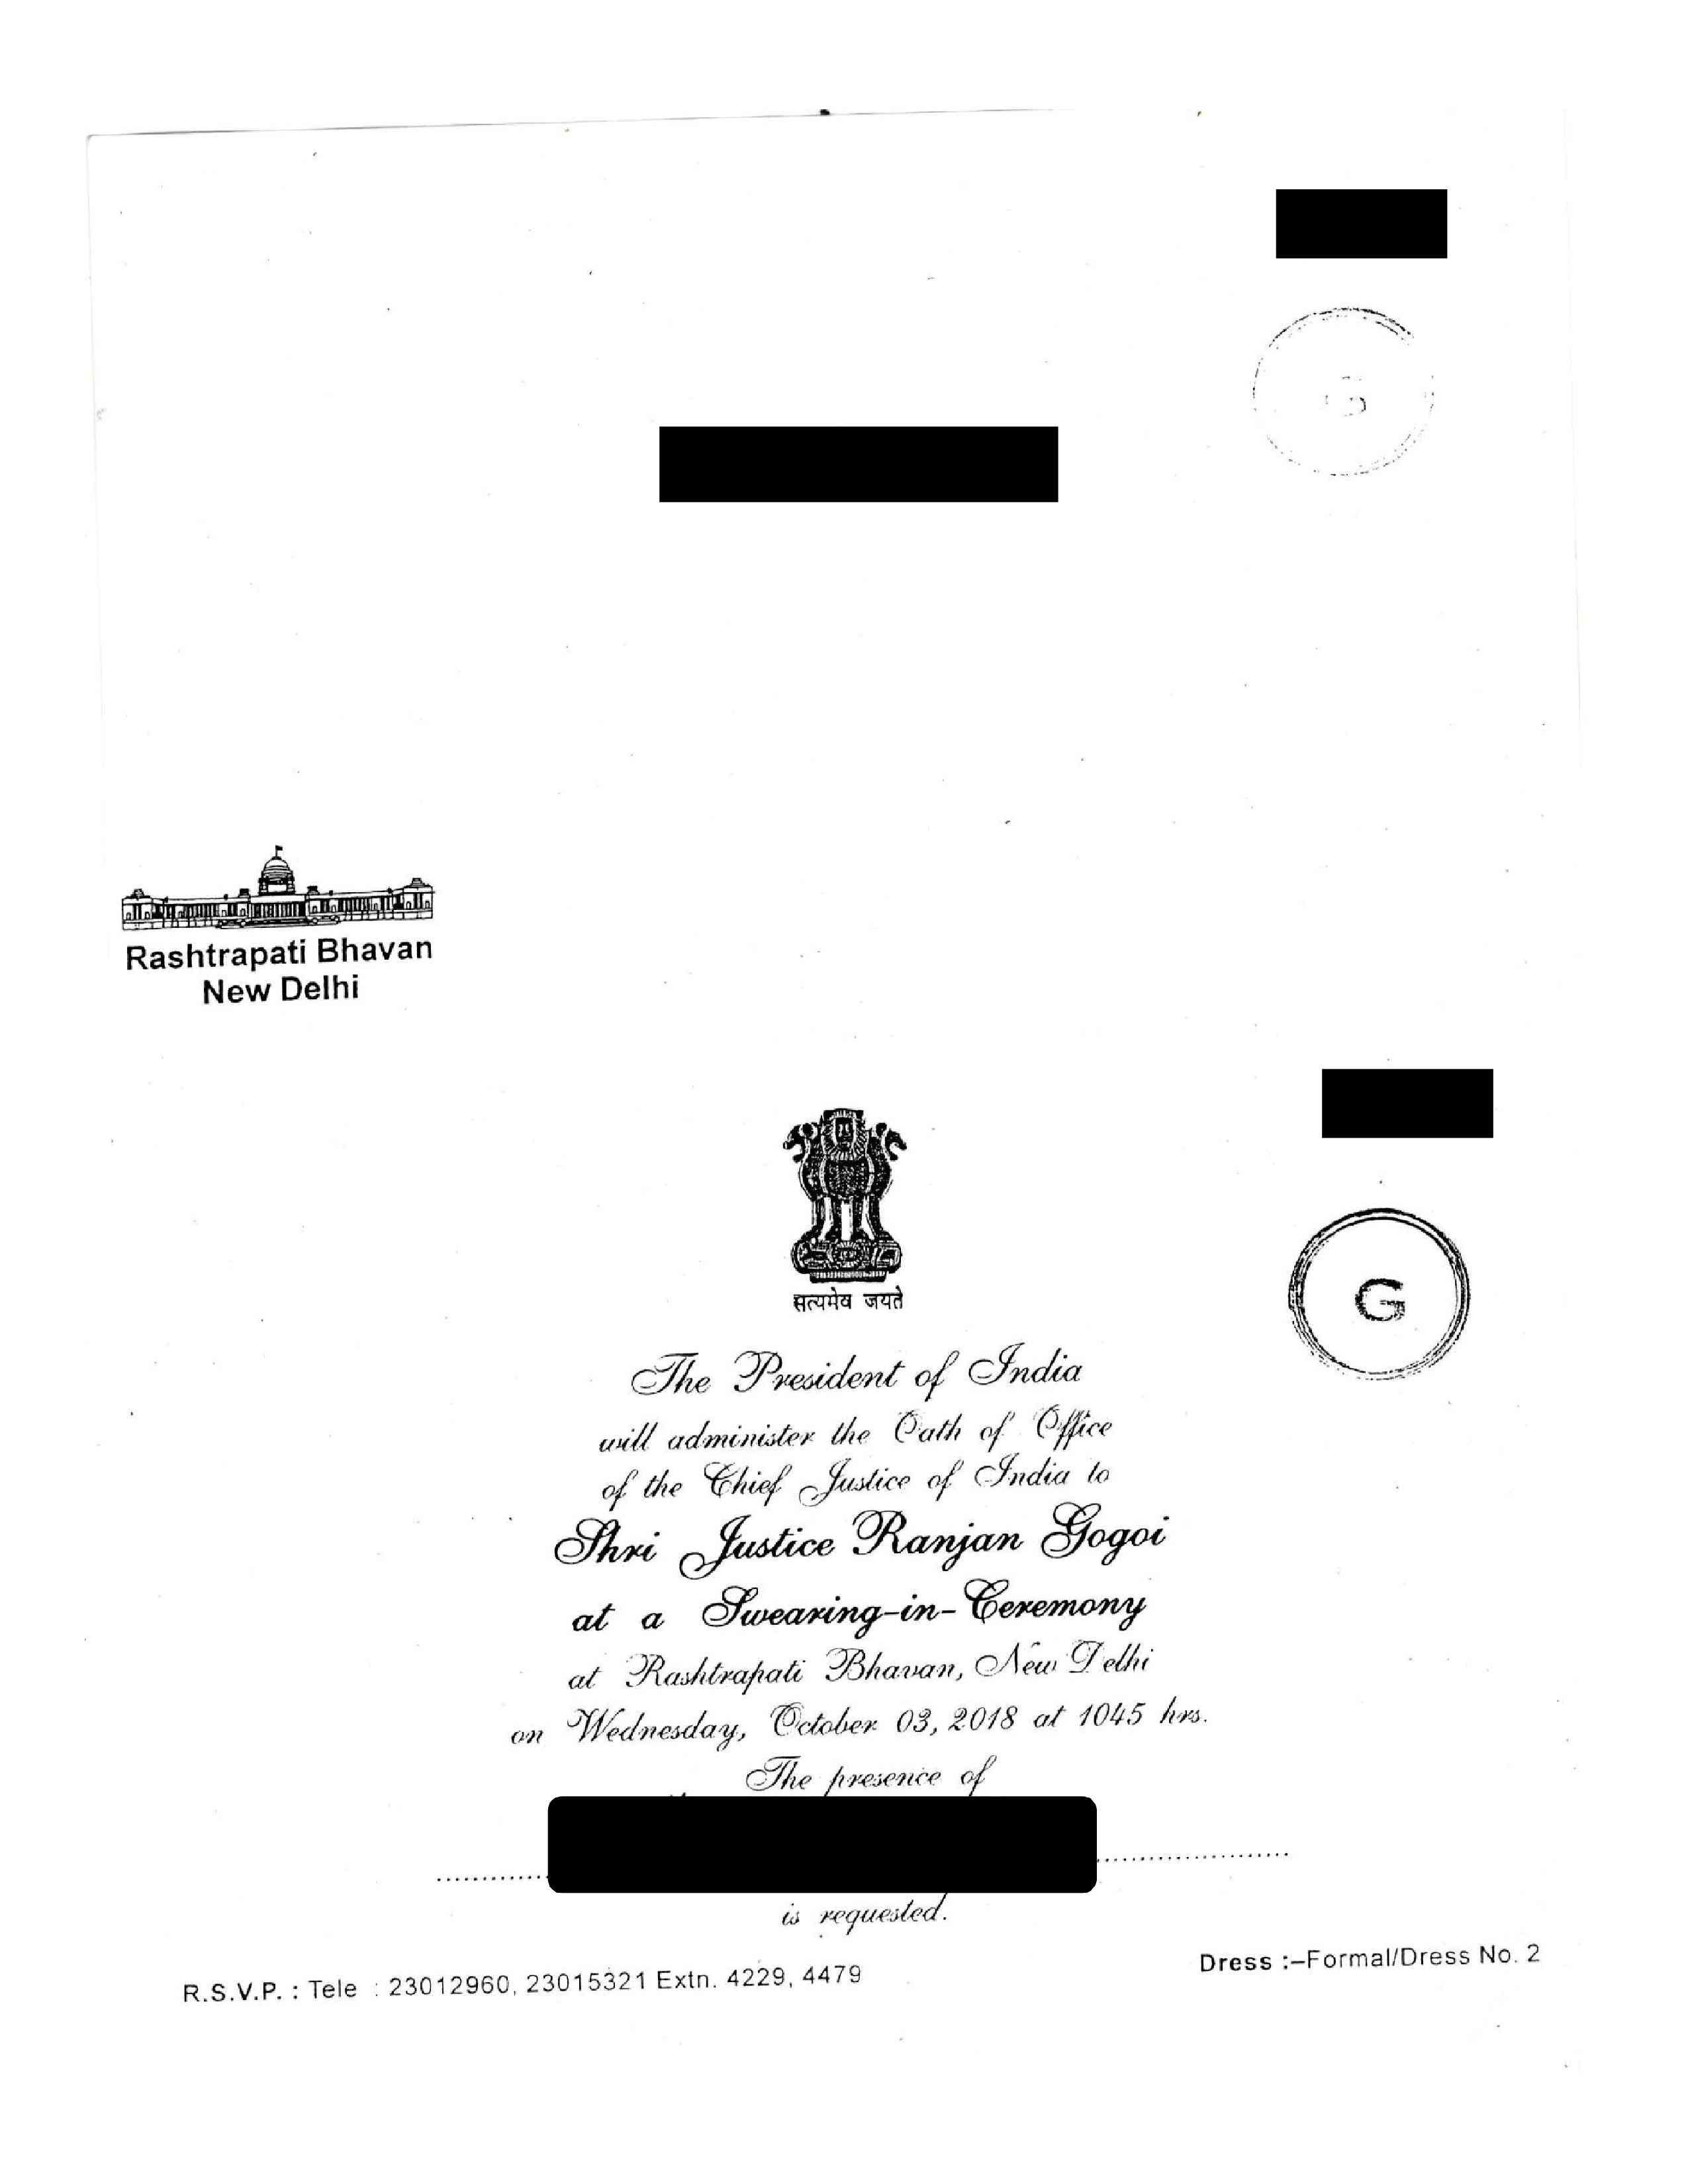 The invite to the Chief Justice of India's oath ceremony.